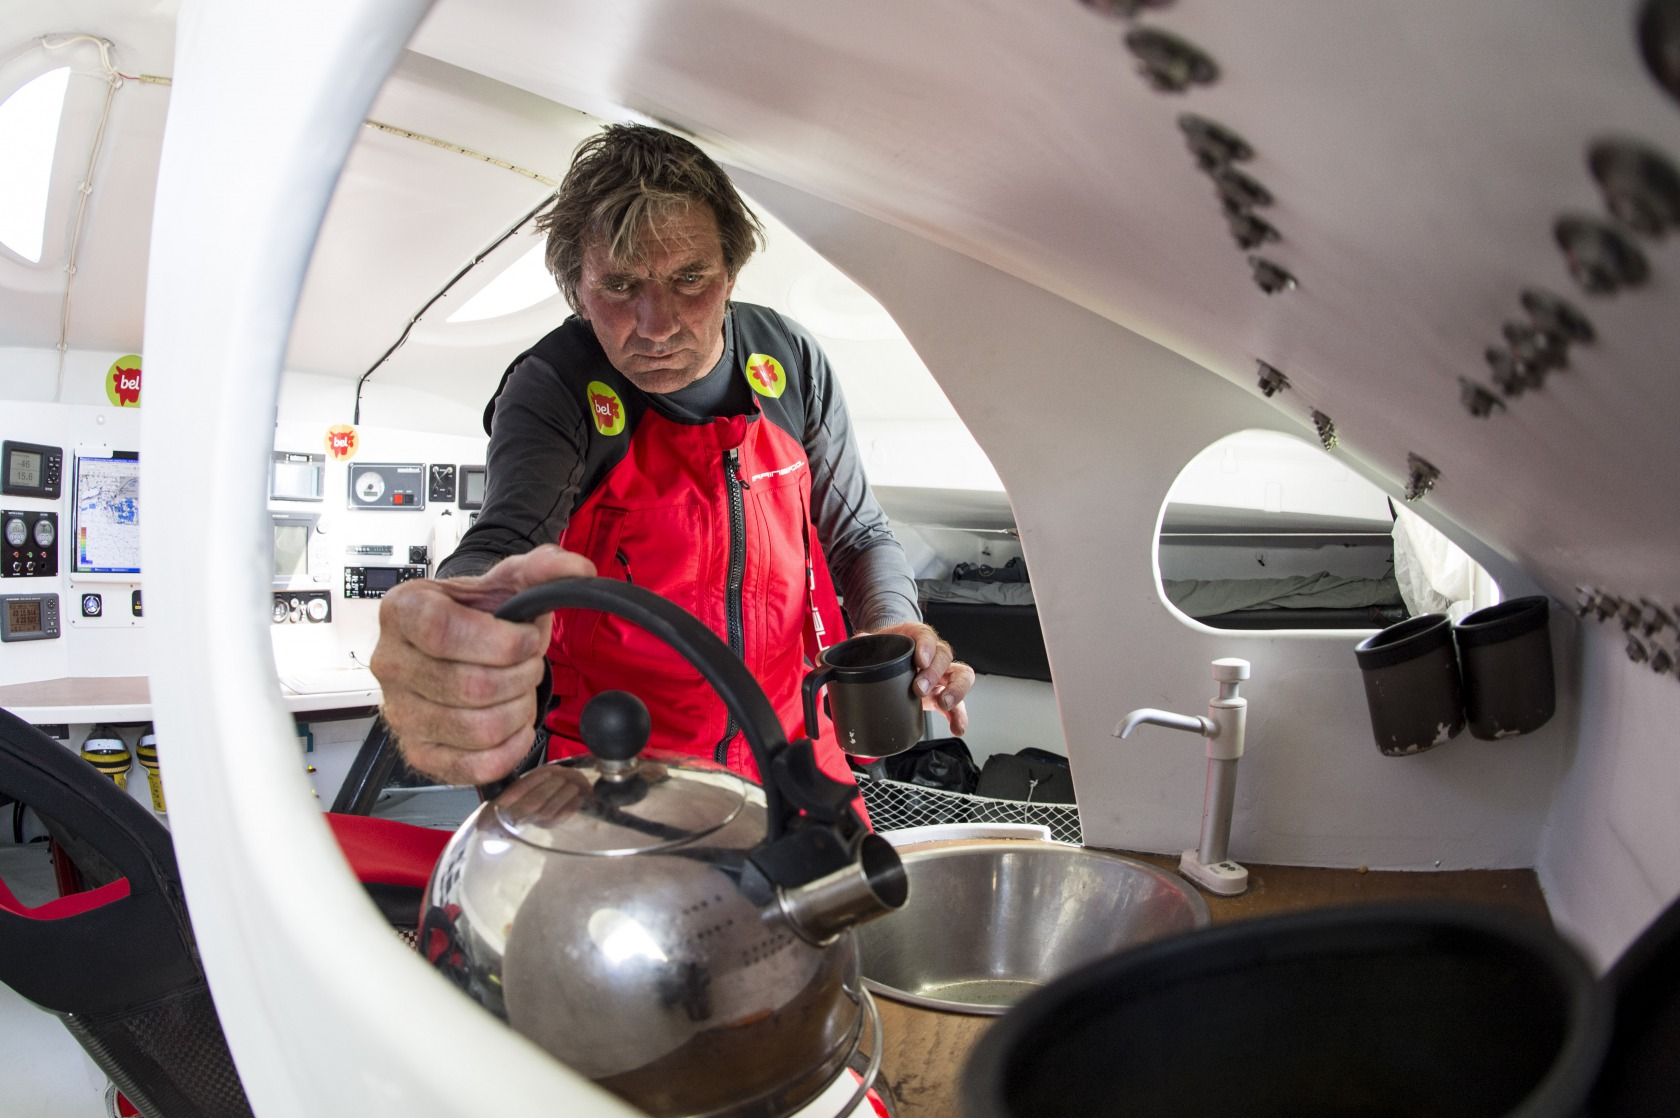 VENDEE GLOBE 2012 - GROUPE BEL - SKIPPER : KITO DE PAVANT (FRA) PHOTO : VINCENT CURUTCHET / DARK FRAME